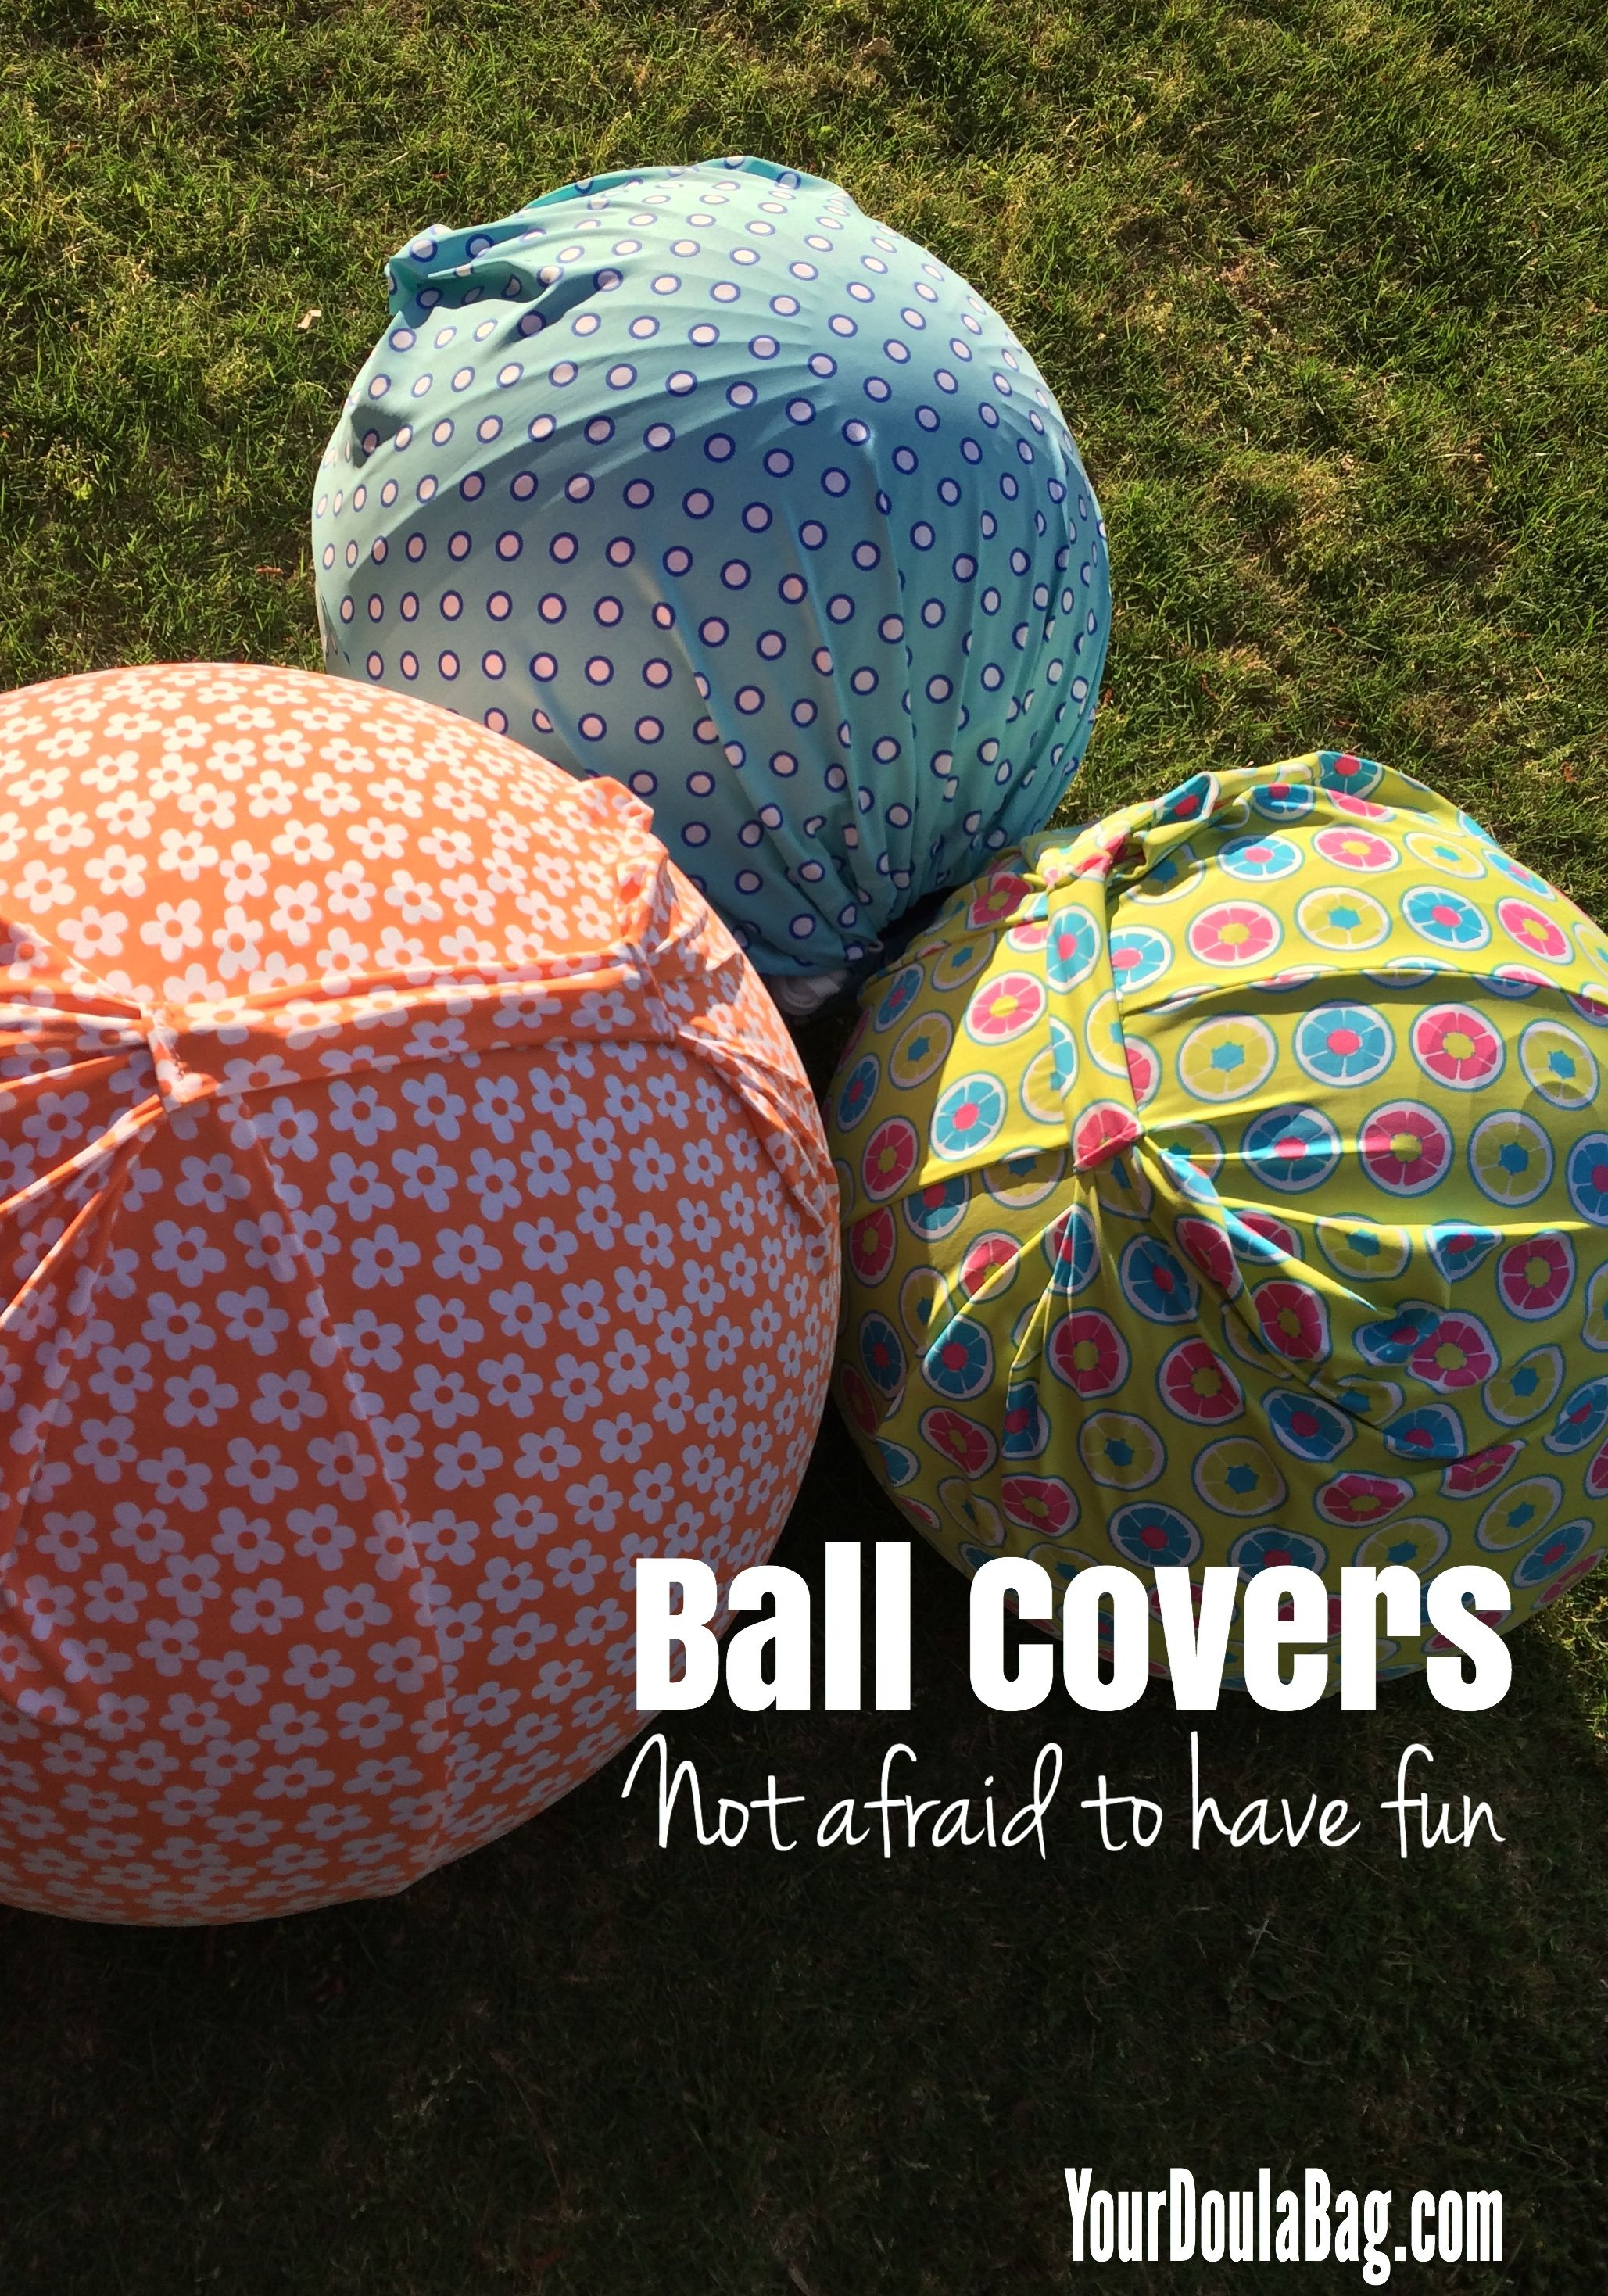 Cover your exercise ball or birth ball with a fun cover to make it clean, easy to carry and cute!  Show your personality!  These covers are bold and fun. Great for doulas, childbirth educators and pregnant moms packing their hospital bag for birth.